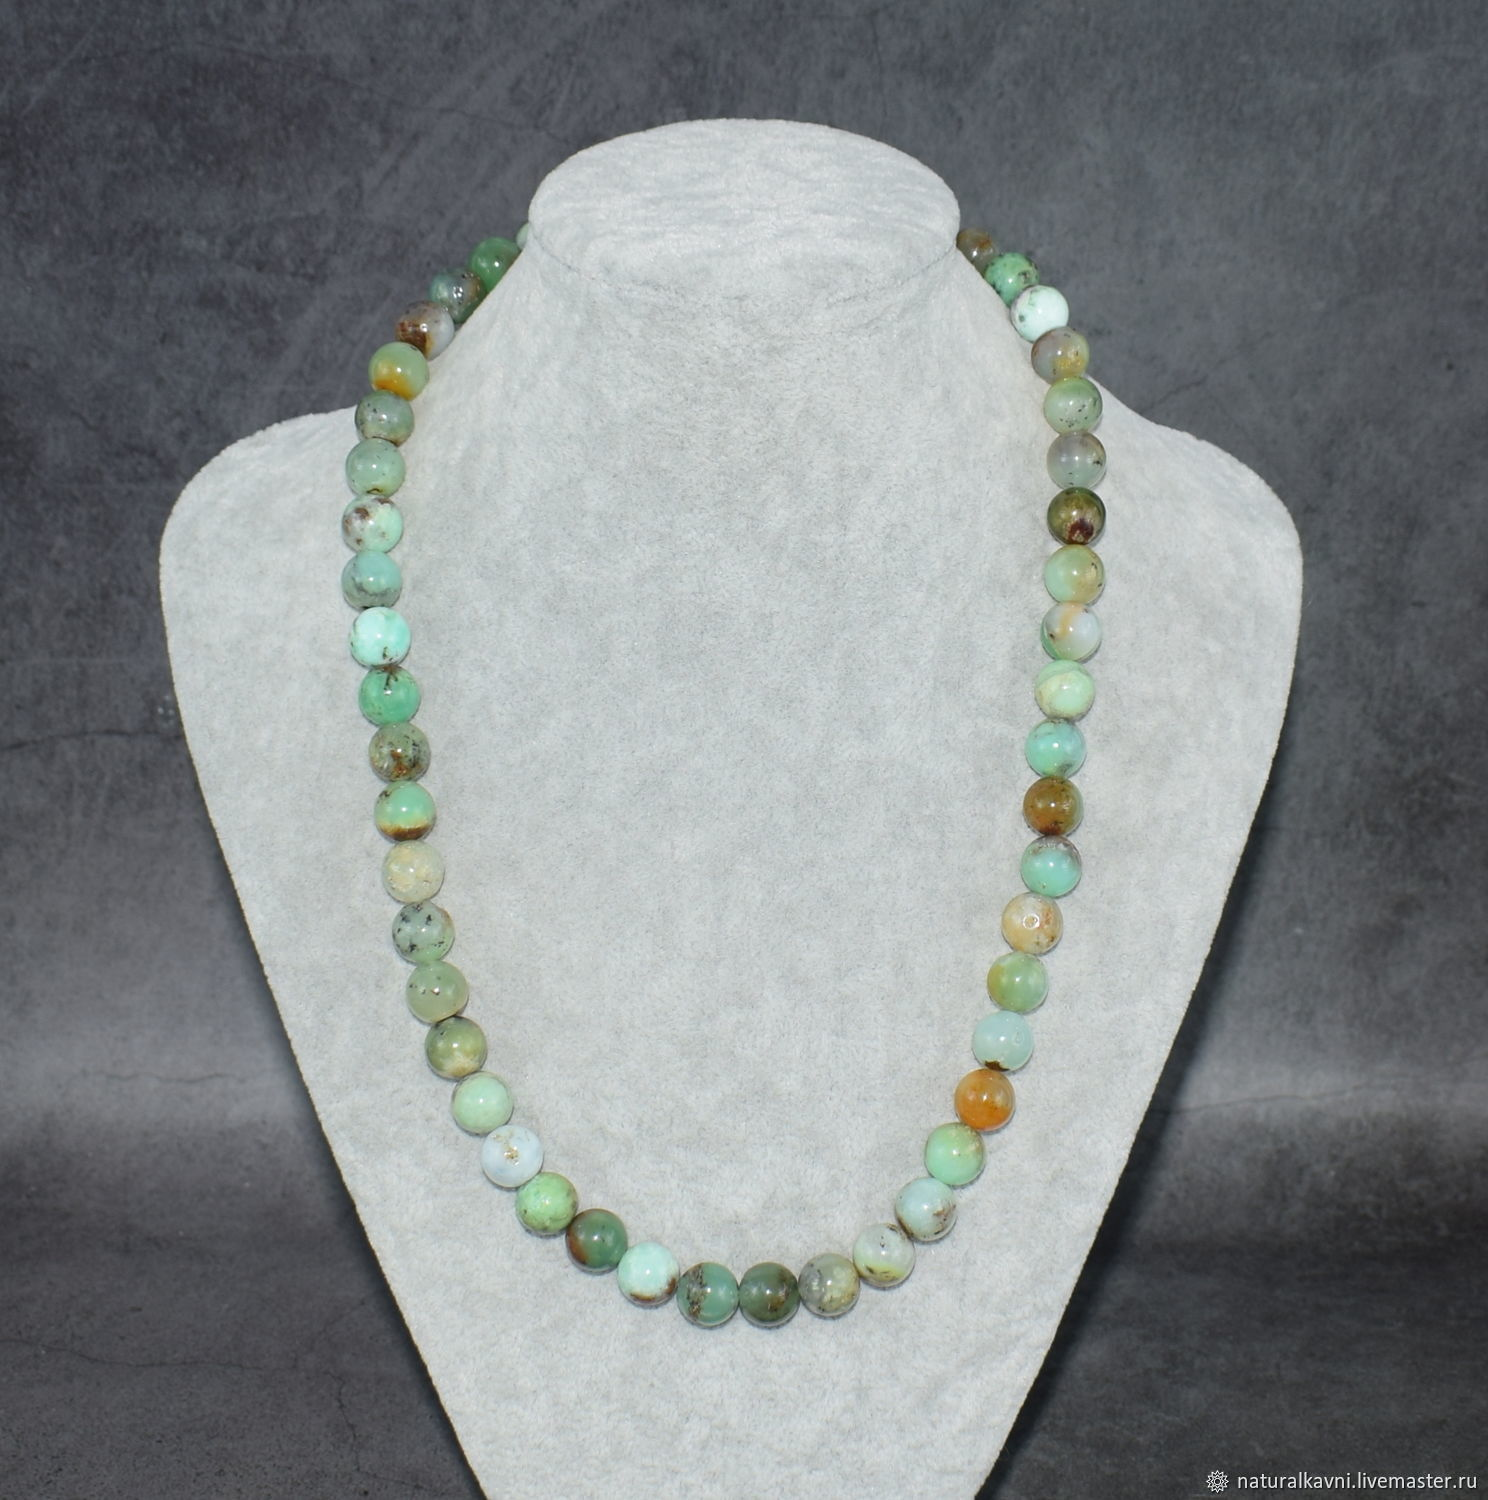 Chrysoprase Natural Stone Beads Made of Natural Chrysoprase, Beads2, Moscow,  Фото №1